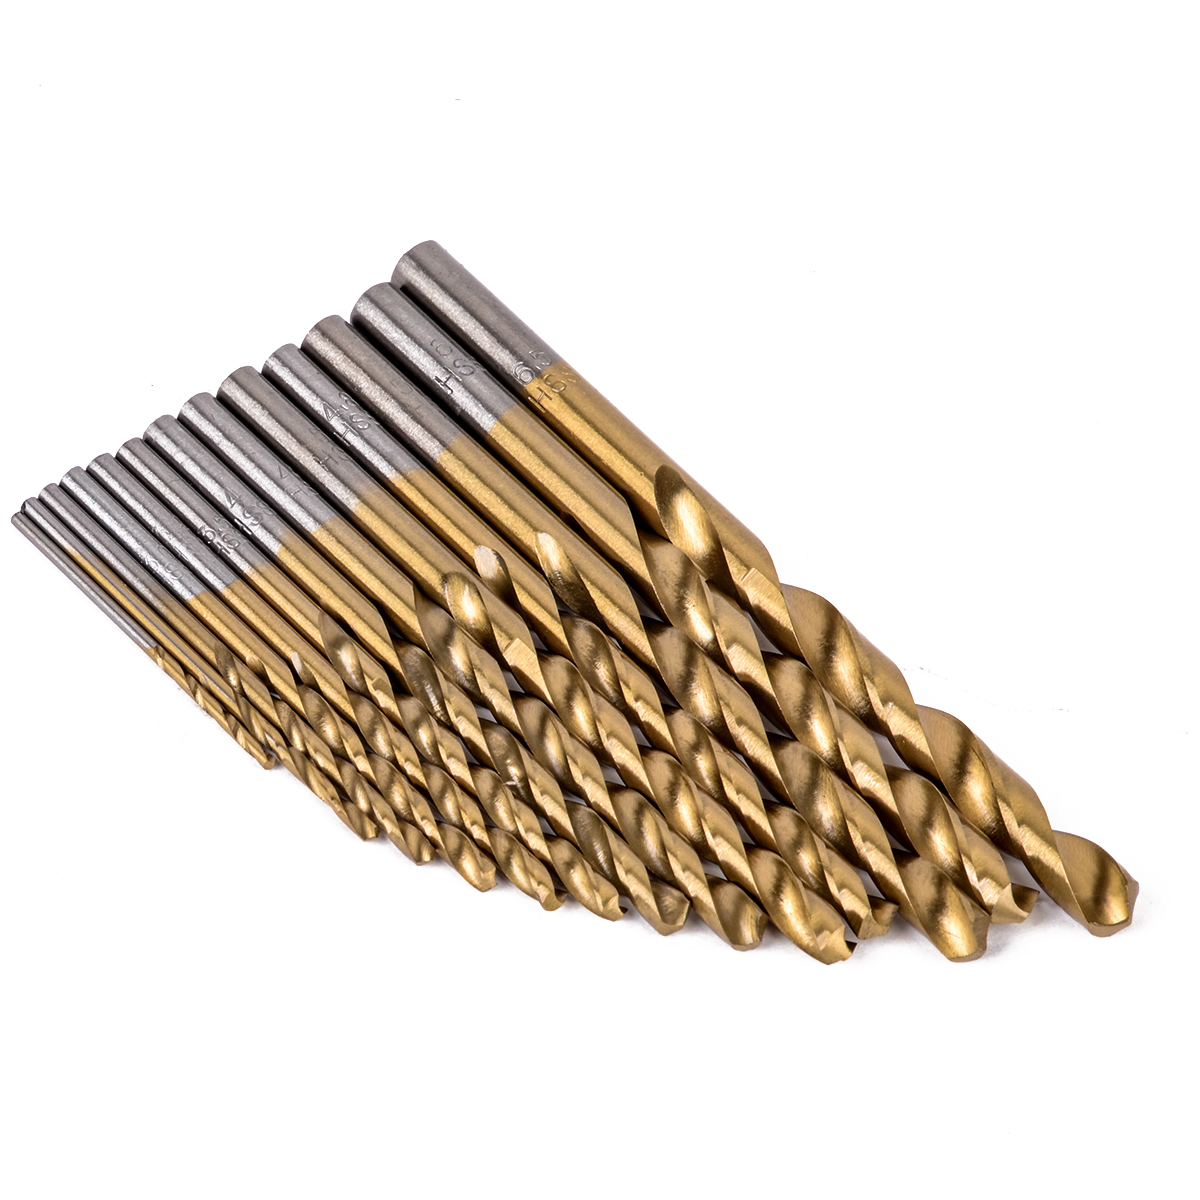 13Pcs HSS Twist Drill Bit Set Titanium Coated Drill For Woodworking Wood Plastic And Thin Iron HSS Drill Bit Set 1.5-6.5mm